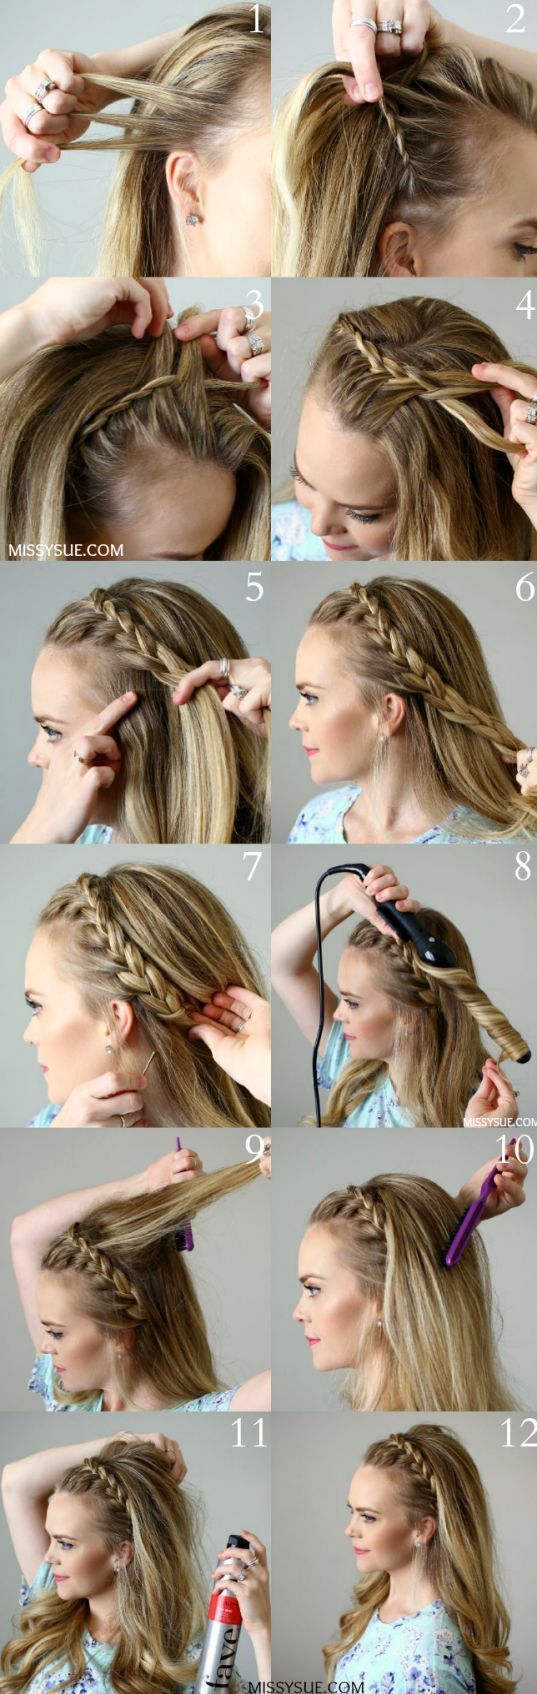 Diy ideas para trenzar tu cabello sin morir en el intento hair